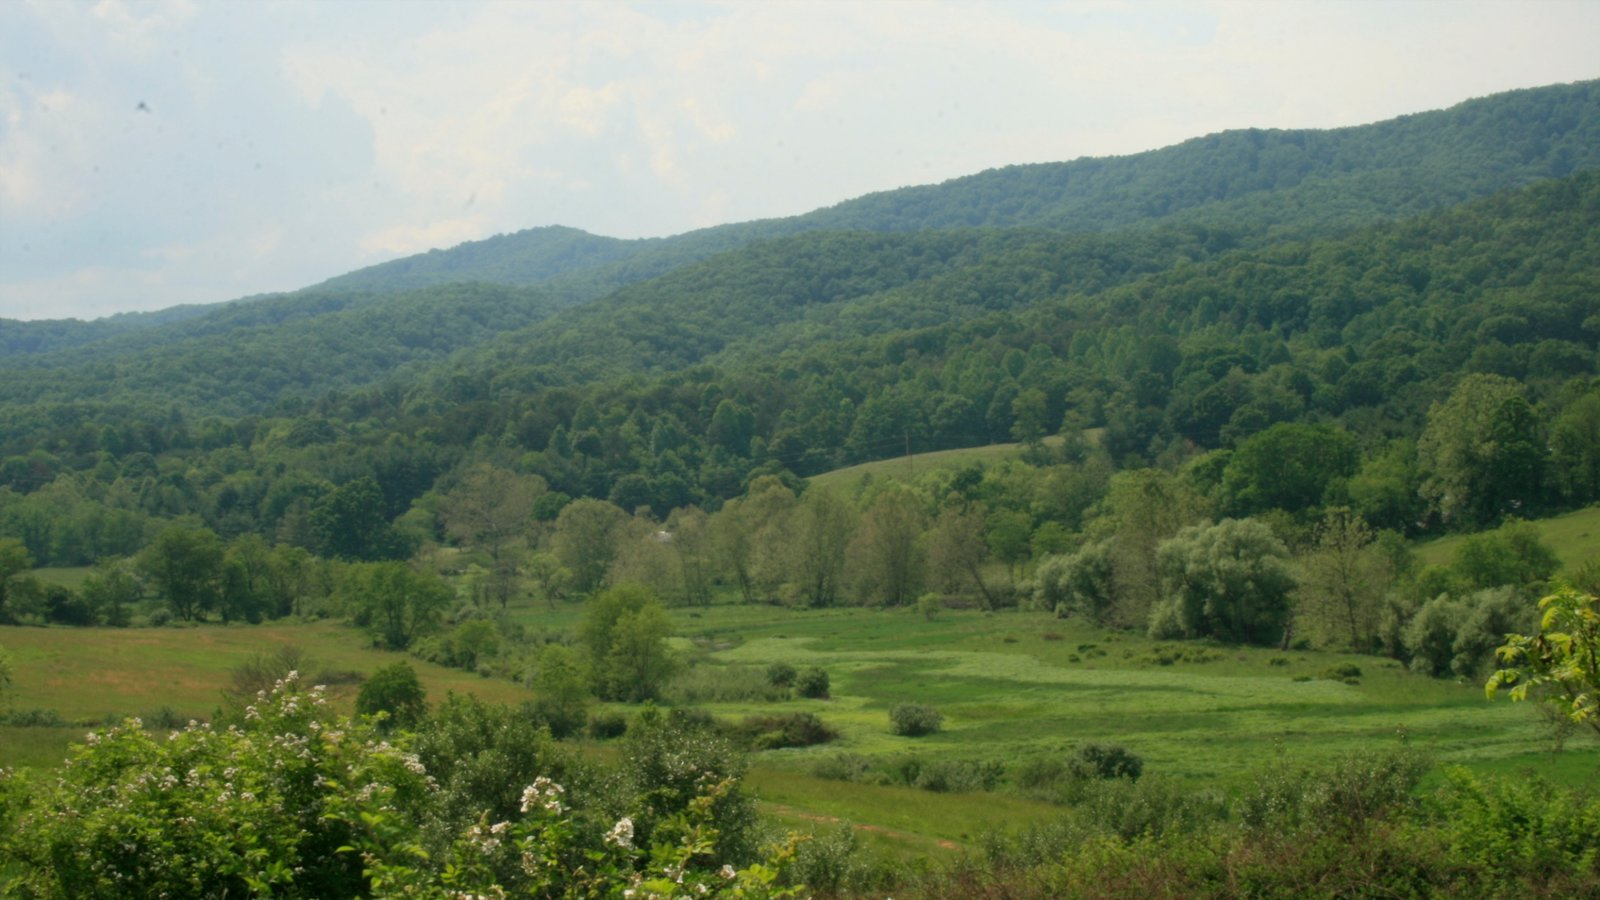 Blacksburg which includes forest scenes and landscape views